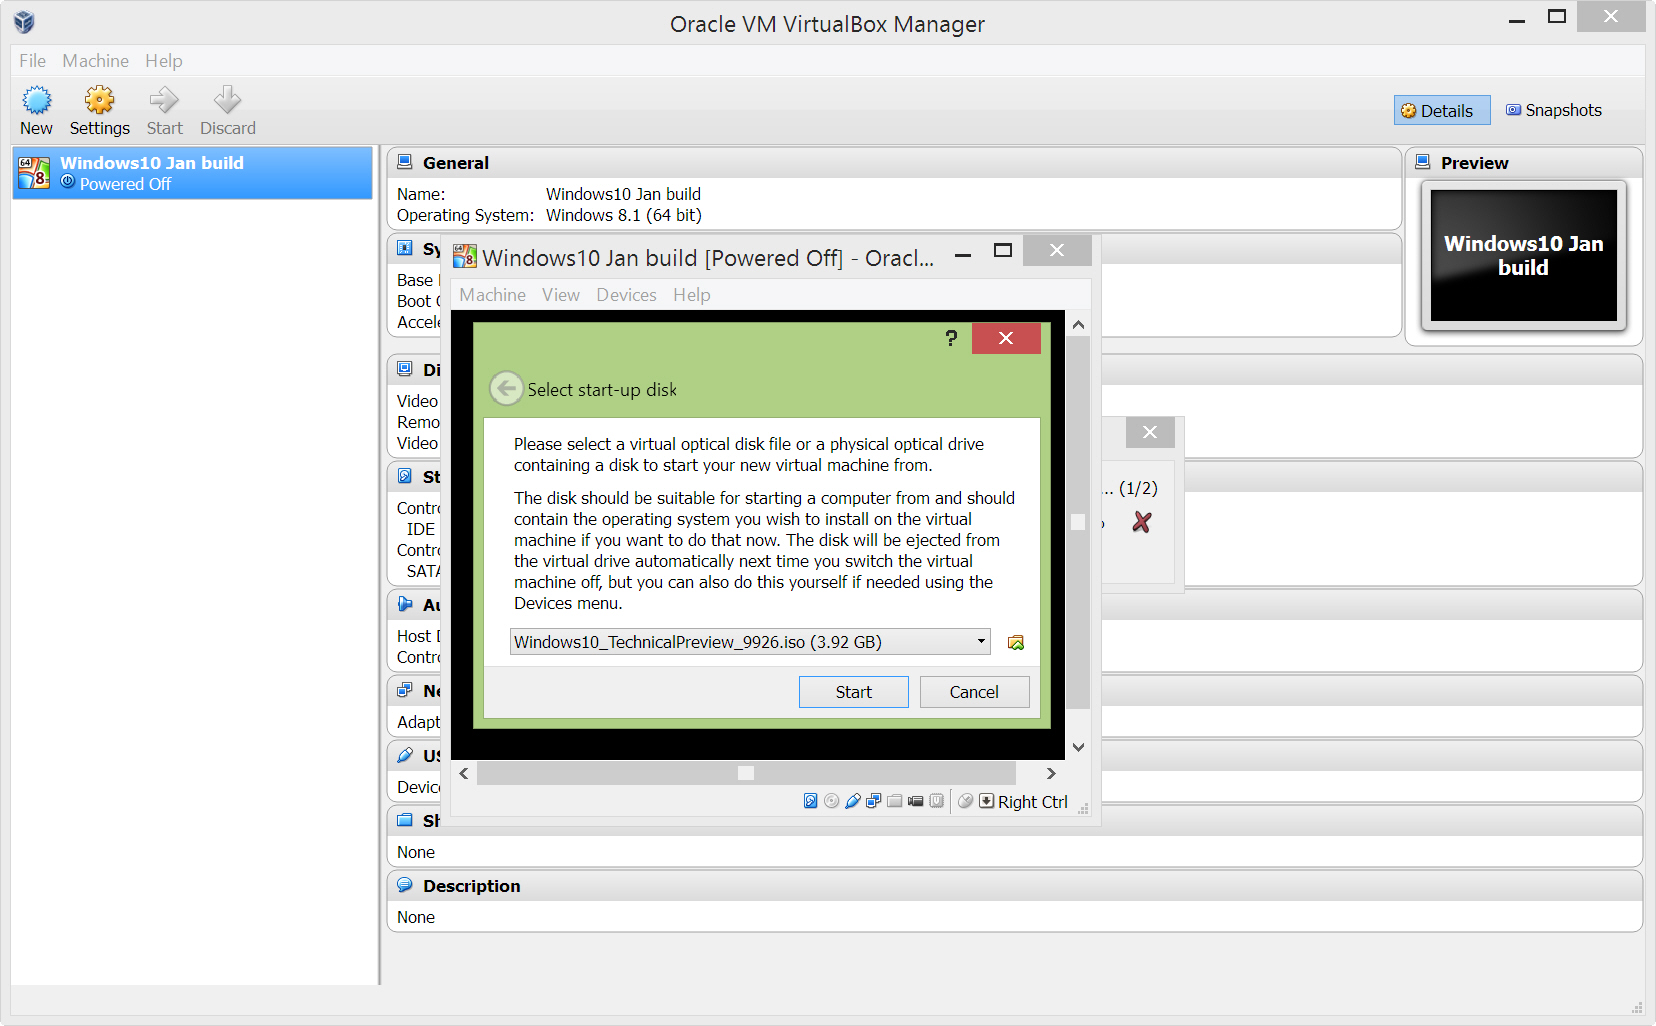 How to install Windows 10 Technical Preview on Oracle VirtualBox